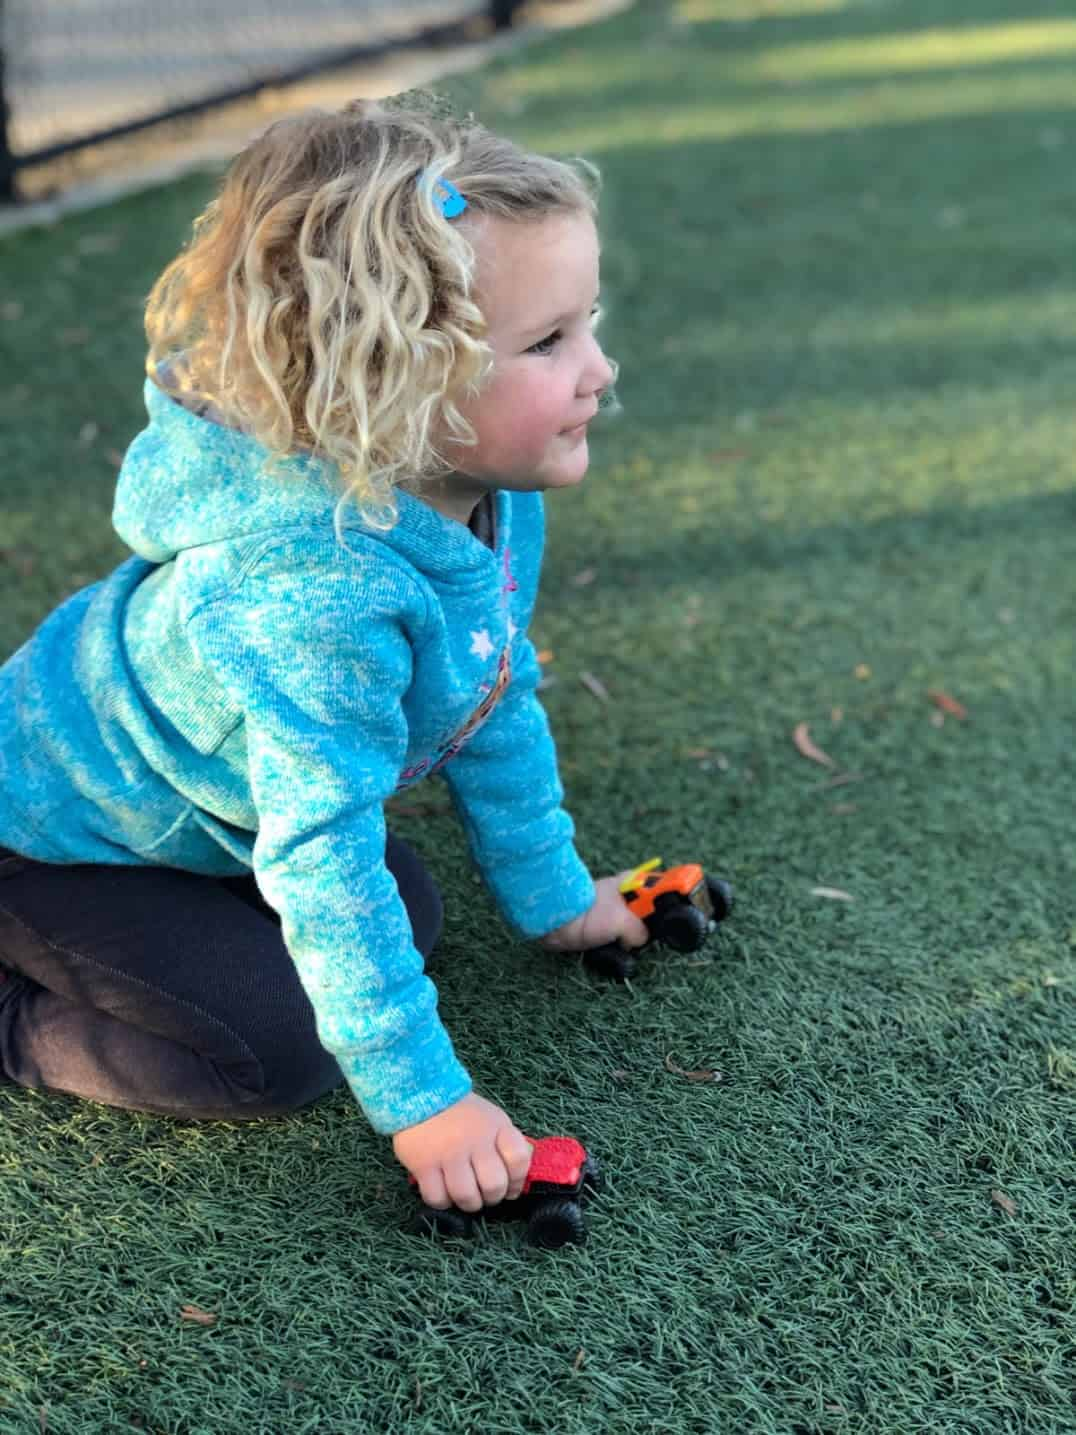 toddler girl holding two toy trucks watching her sibling's soccer game